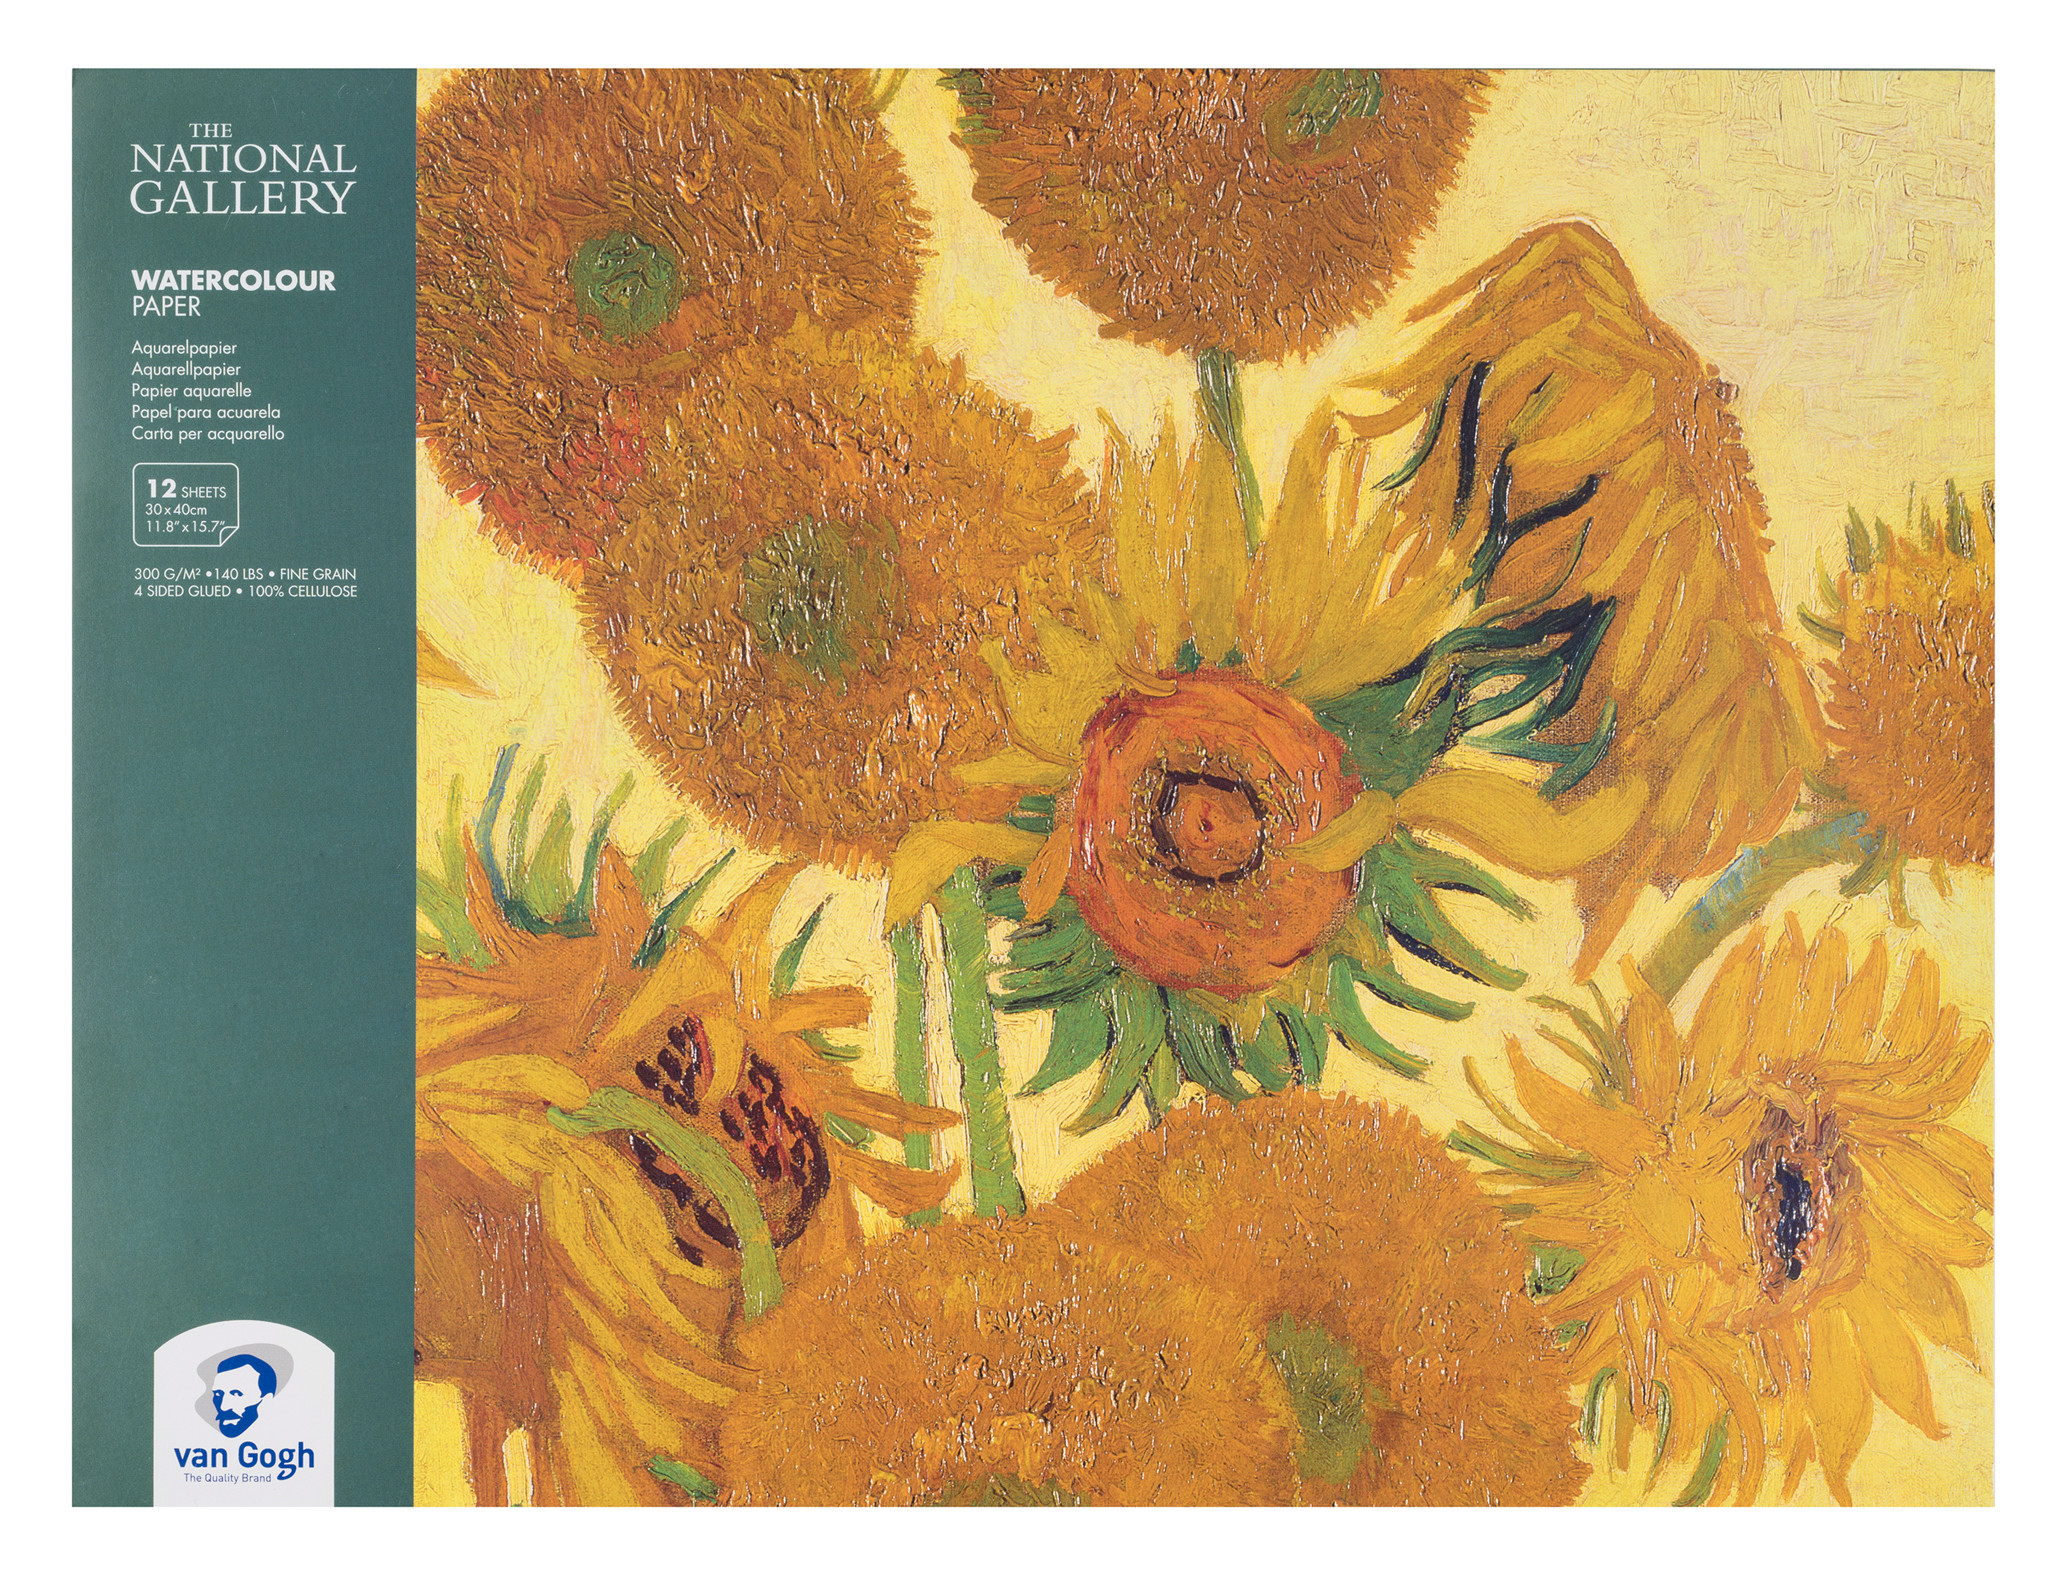 Van Gogh The National Gallery Water Colour Paper Block, 12 Sheets, 300g/140lb., size 30 x 40cm / 11.8 x 15.7